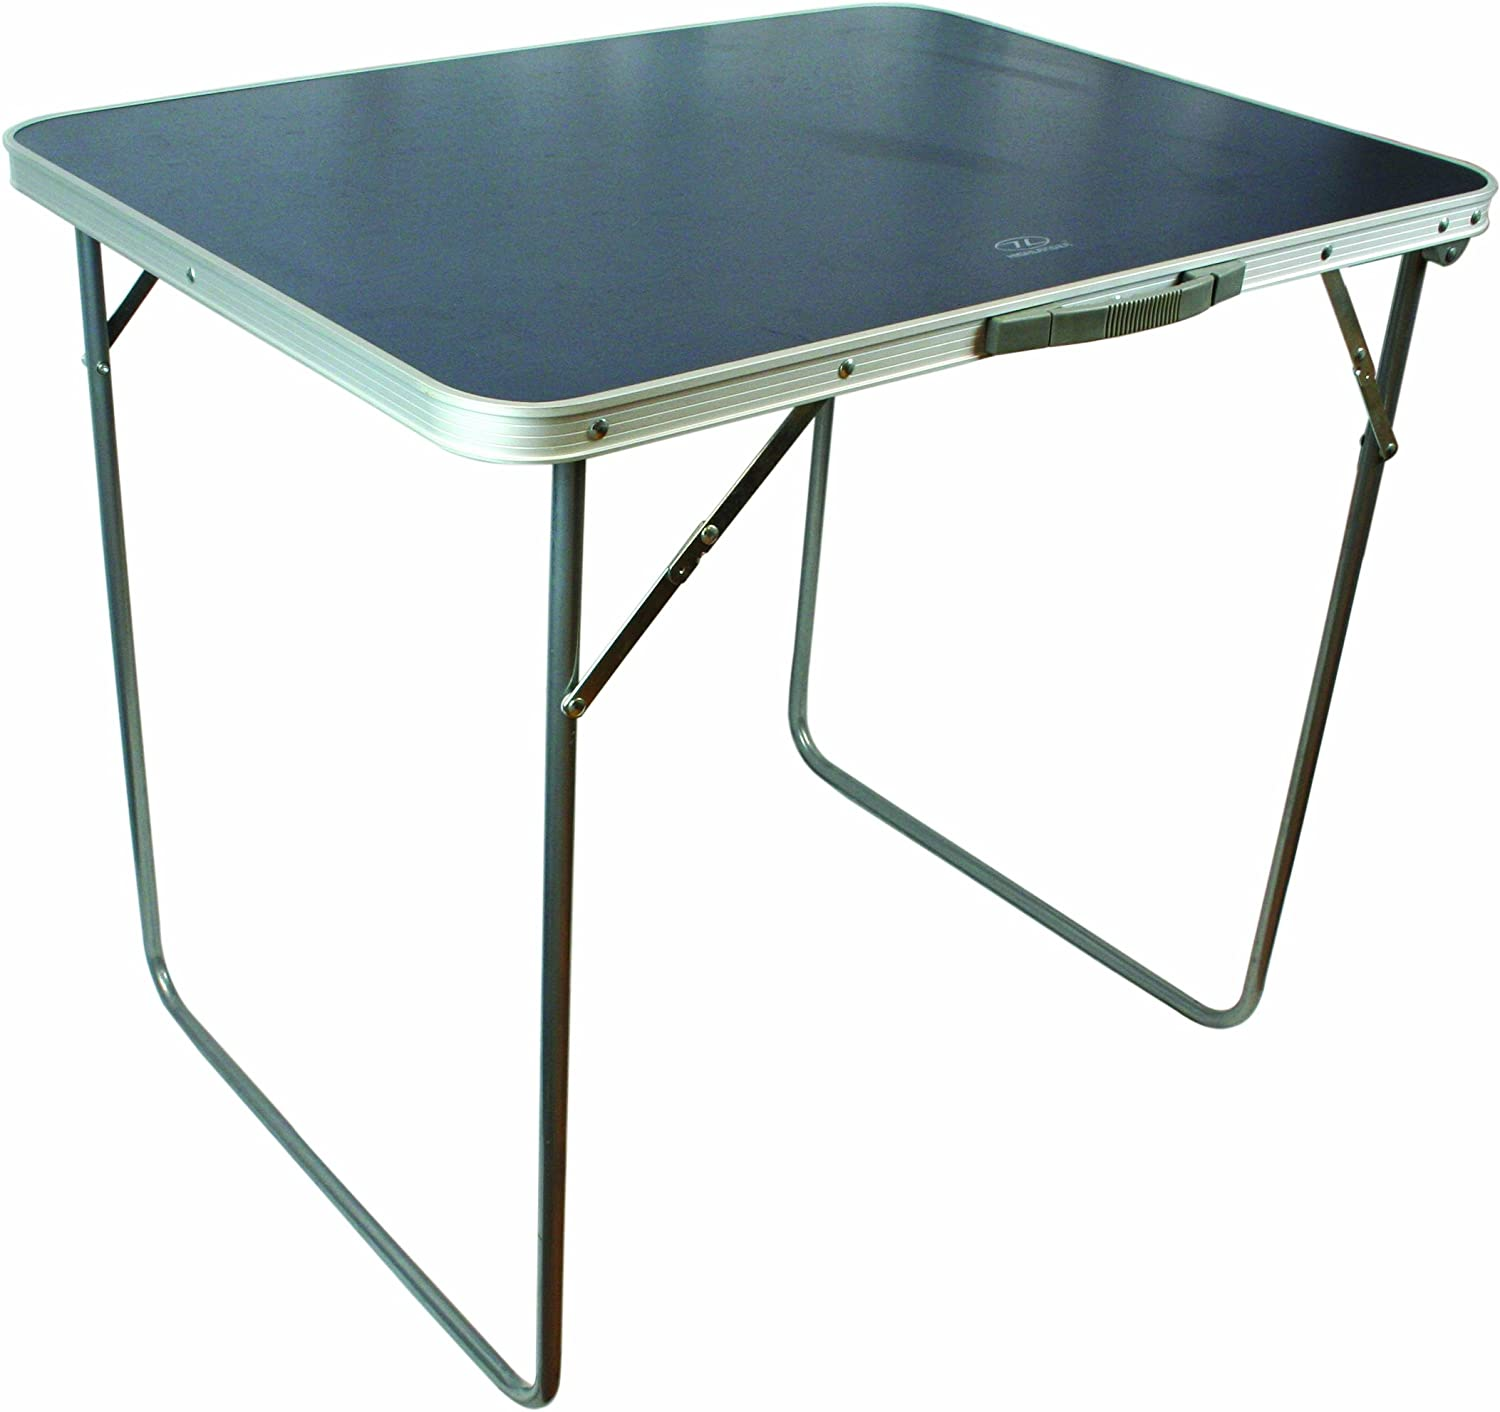 Highlander Small Folding Simple MDF Camping Table